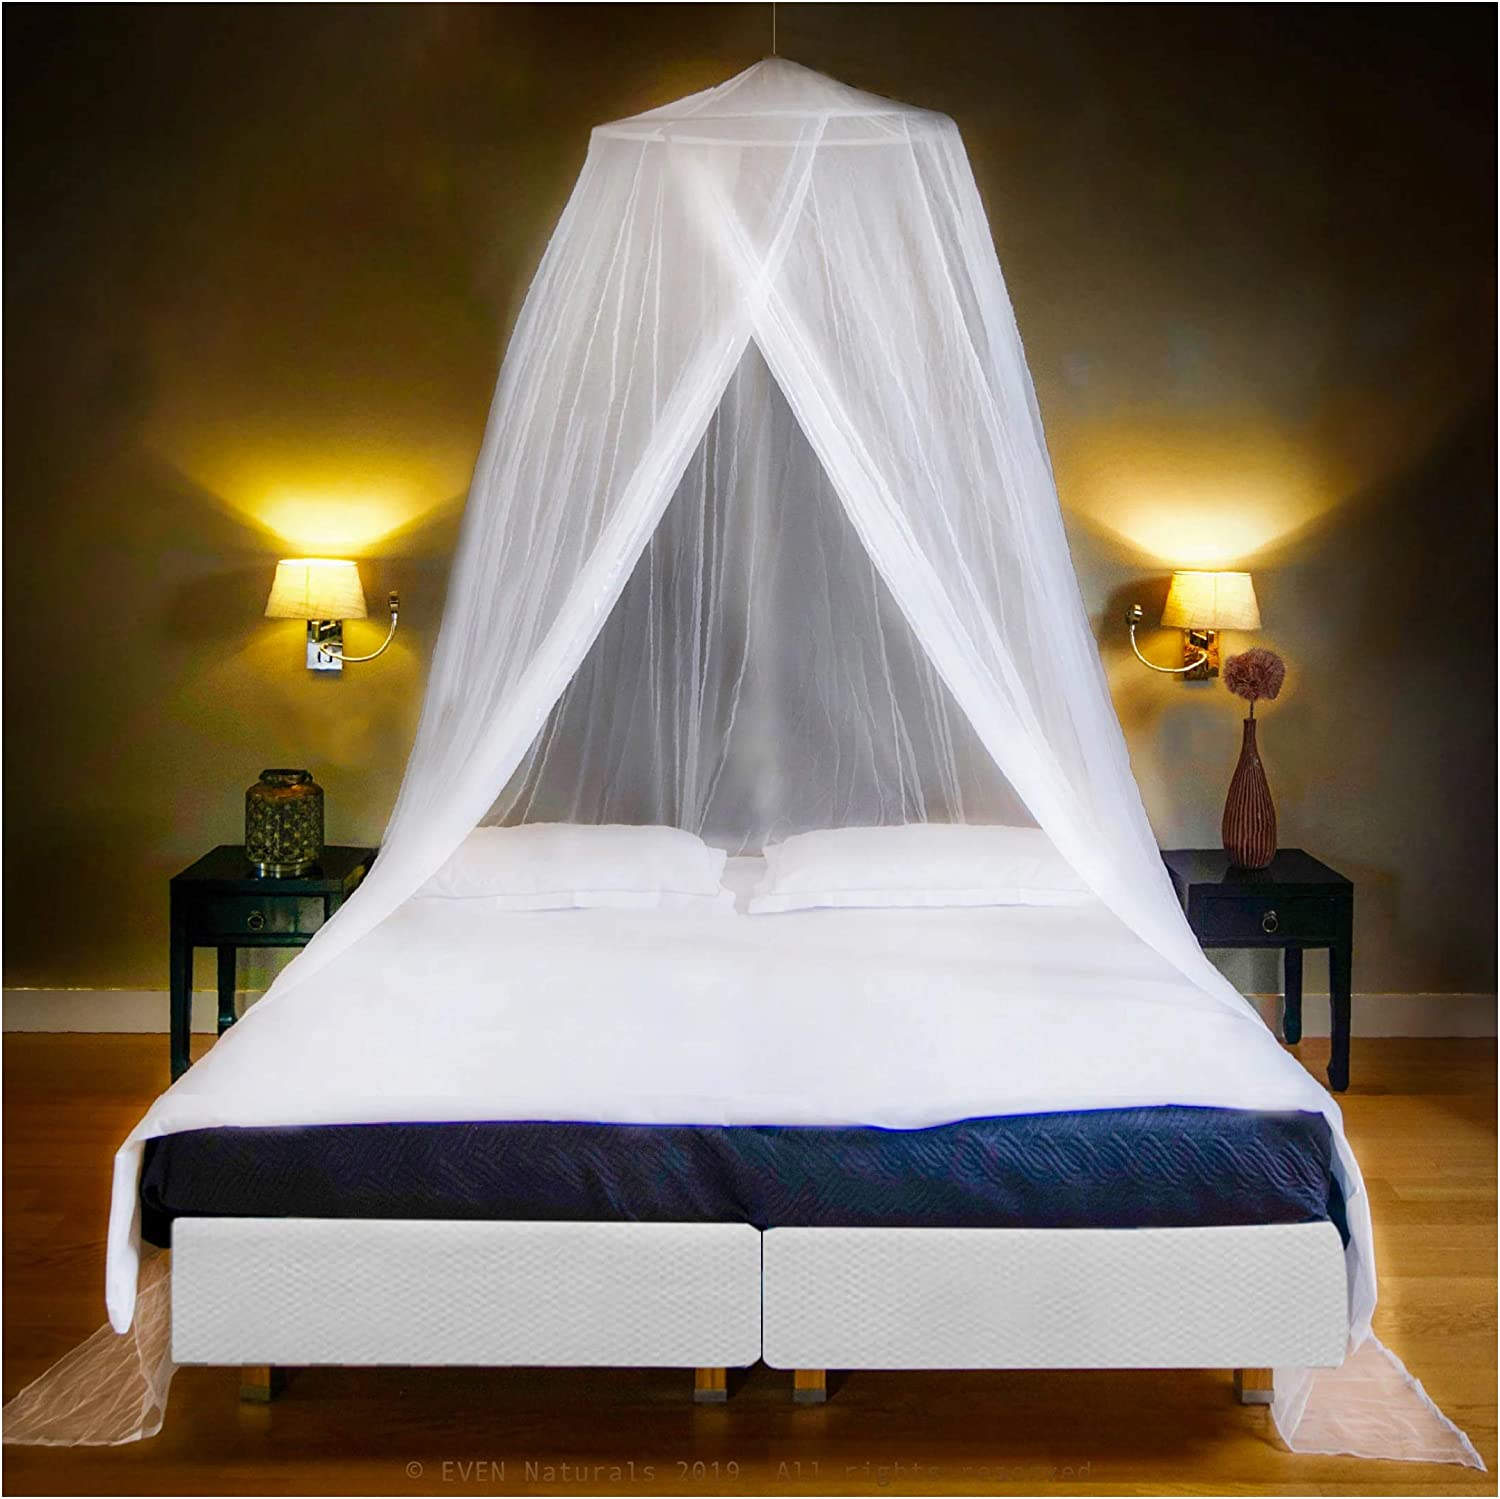 Queen to Super King 2 Double EVEN Naturals MOSQUITO NET for Bed Gift for Twin